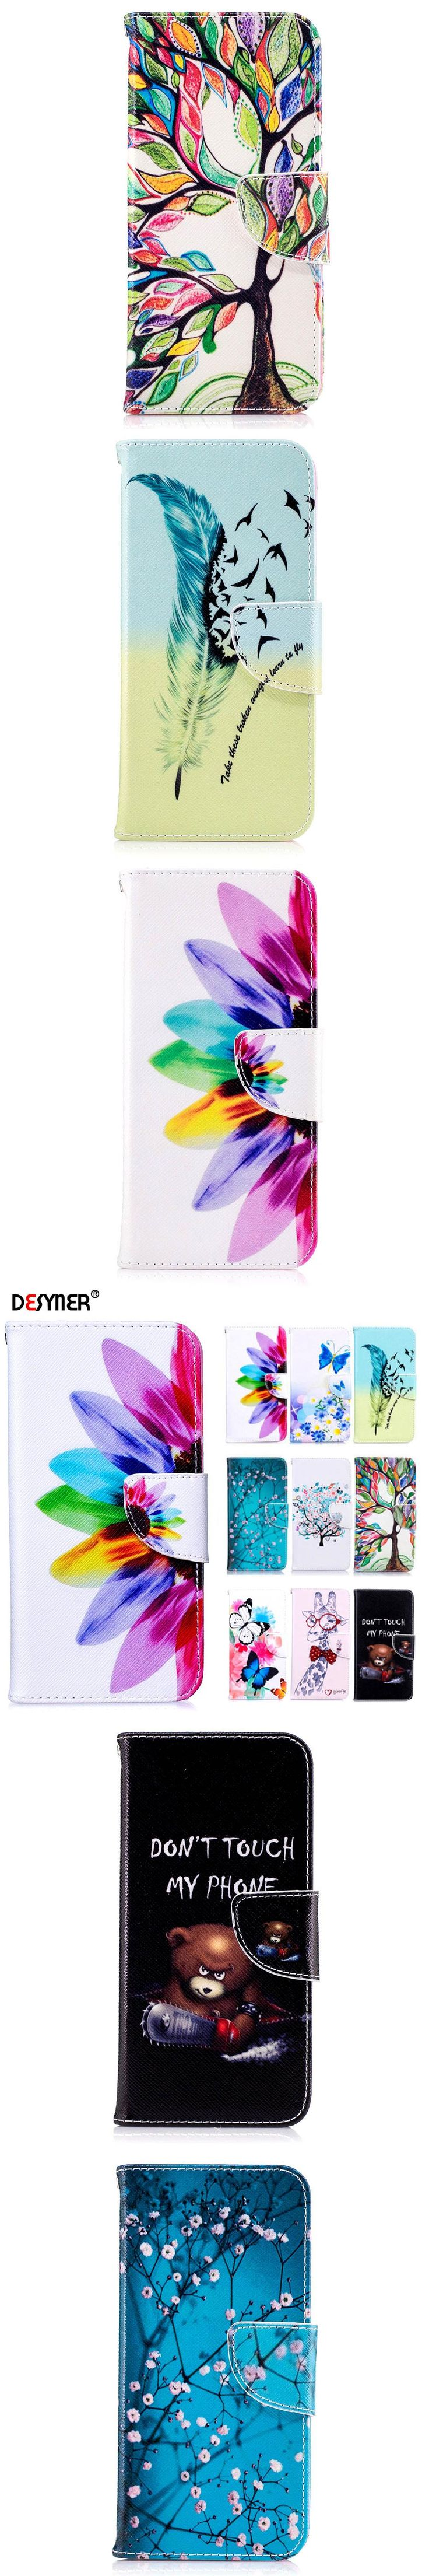 Desyner Case For Samsung S3 S4 S5 S6 S7 S8 Edge Plus Note 3 4 5 J1 J2 J3 J5 J7 A3 A5 G530 G360 PU Leather Wallet Case Cover